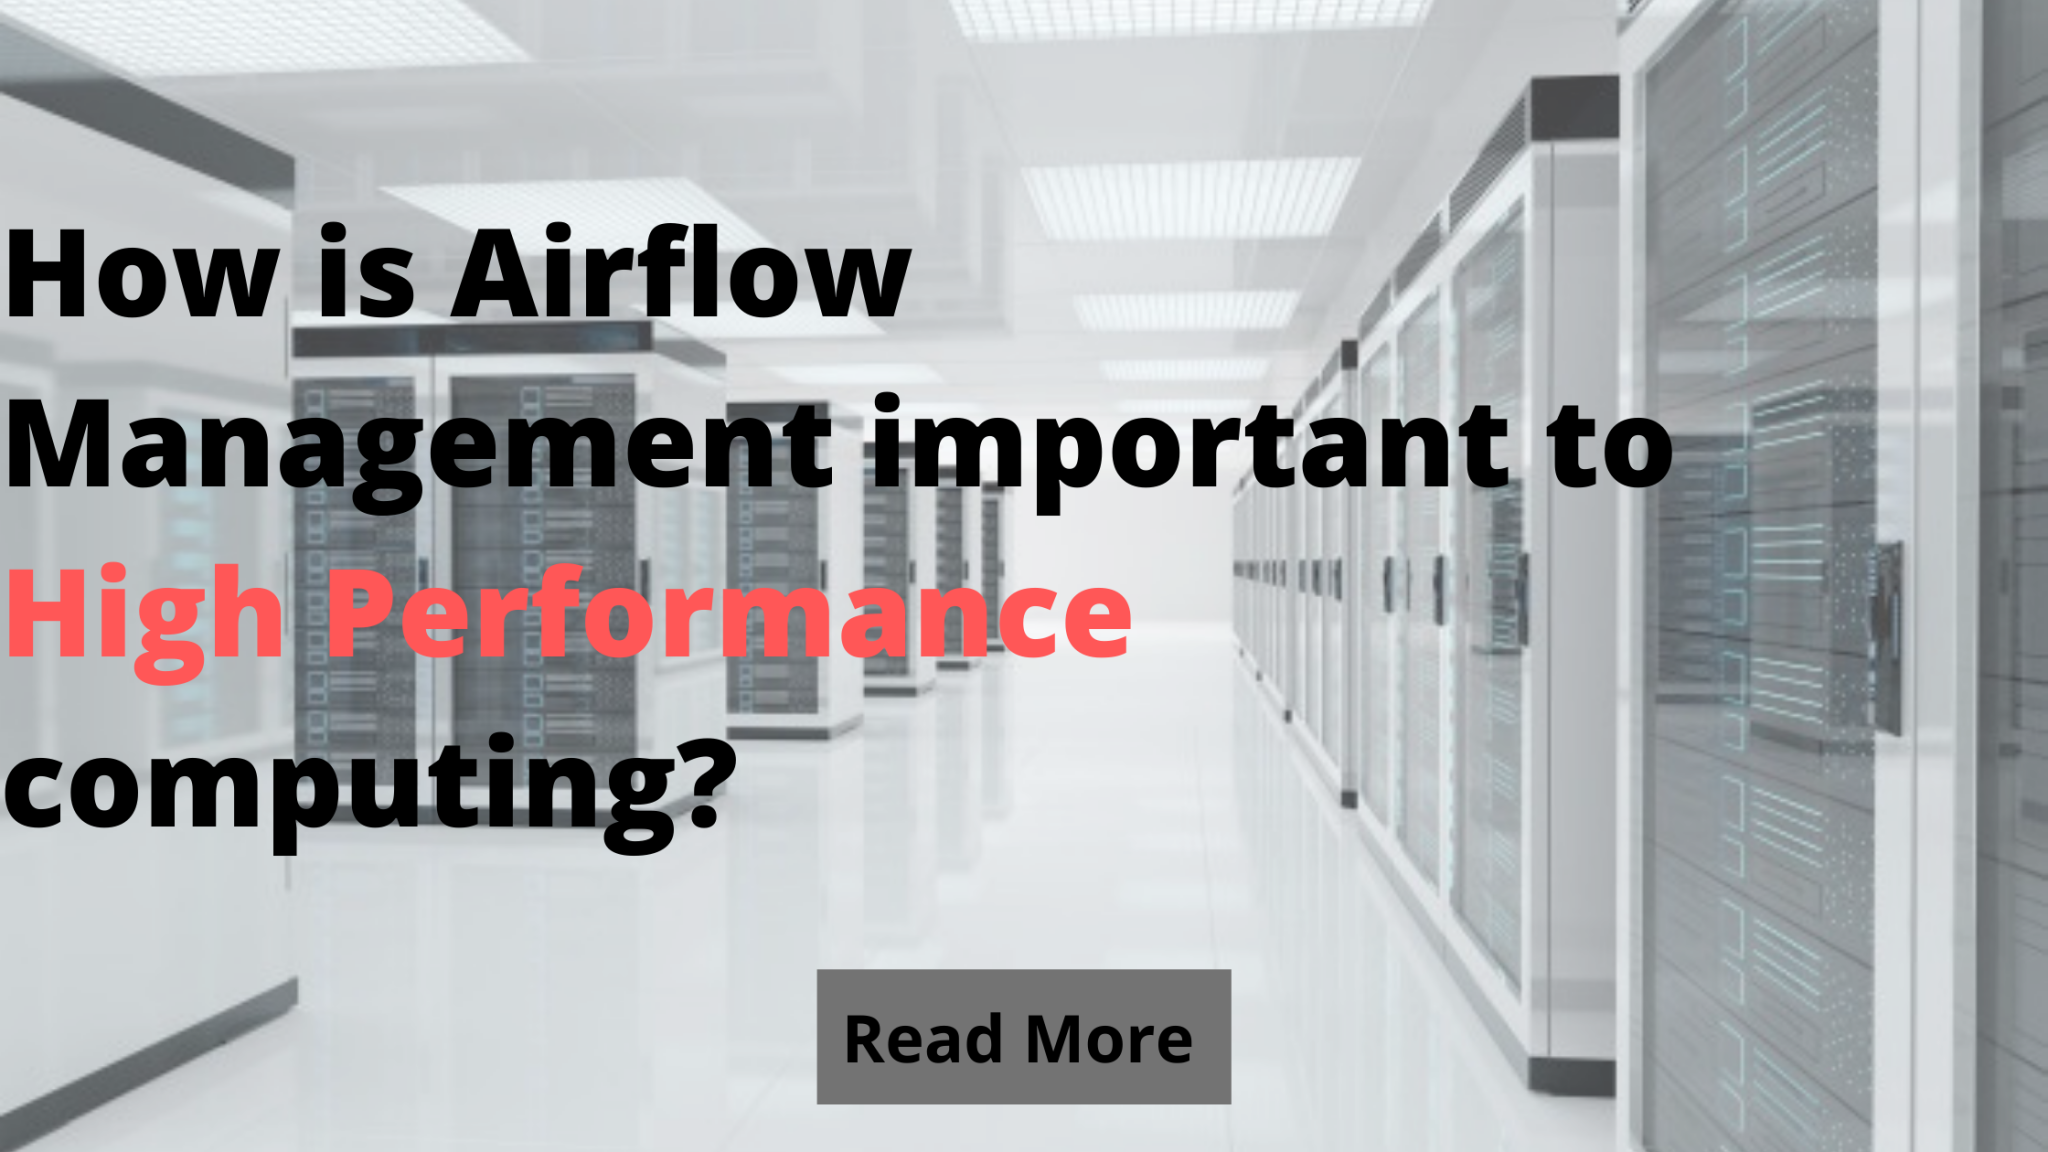 How is Airflow Management important to High Performance computing?